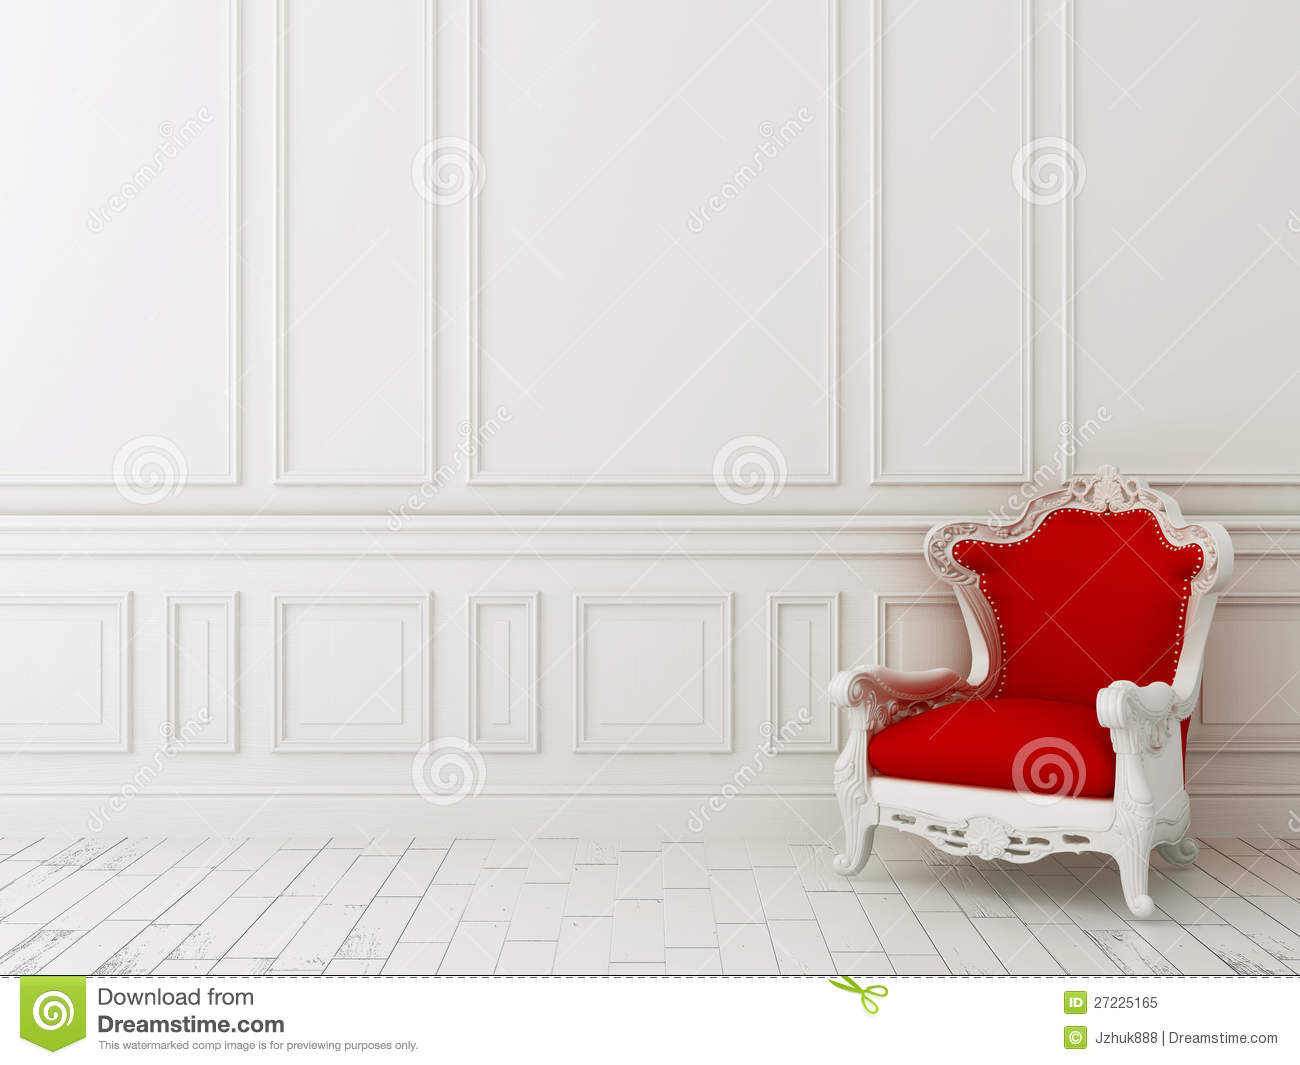 3d Wallpaper For Interior Decoration Red Chair Against A White Wall Stock Image Image Of Home